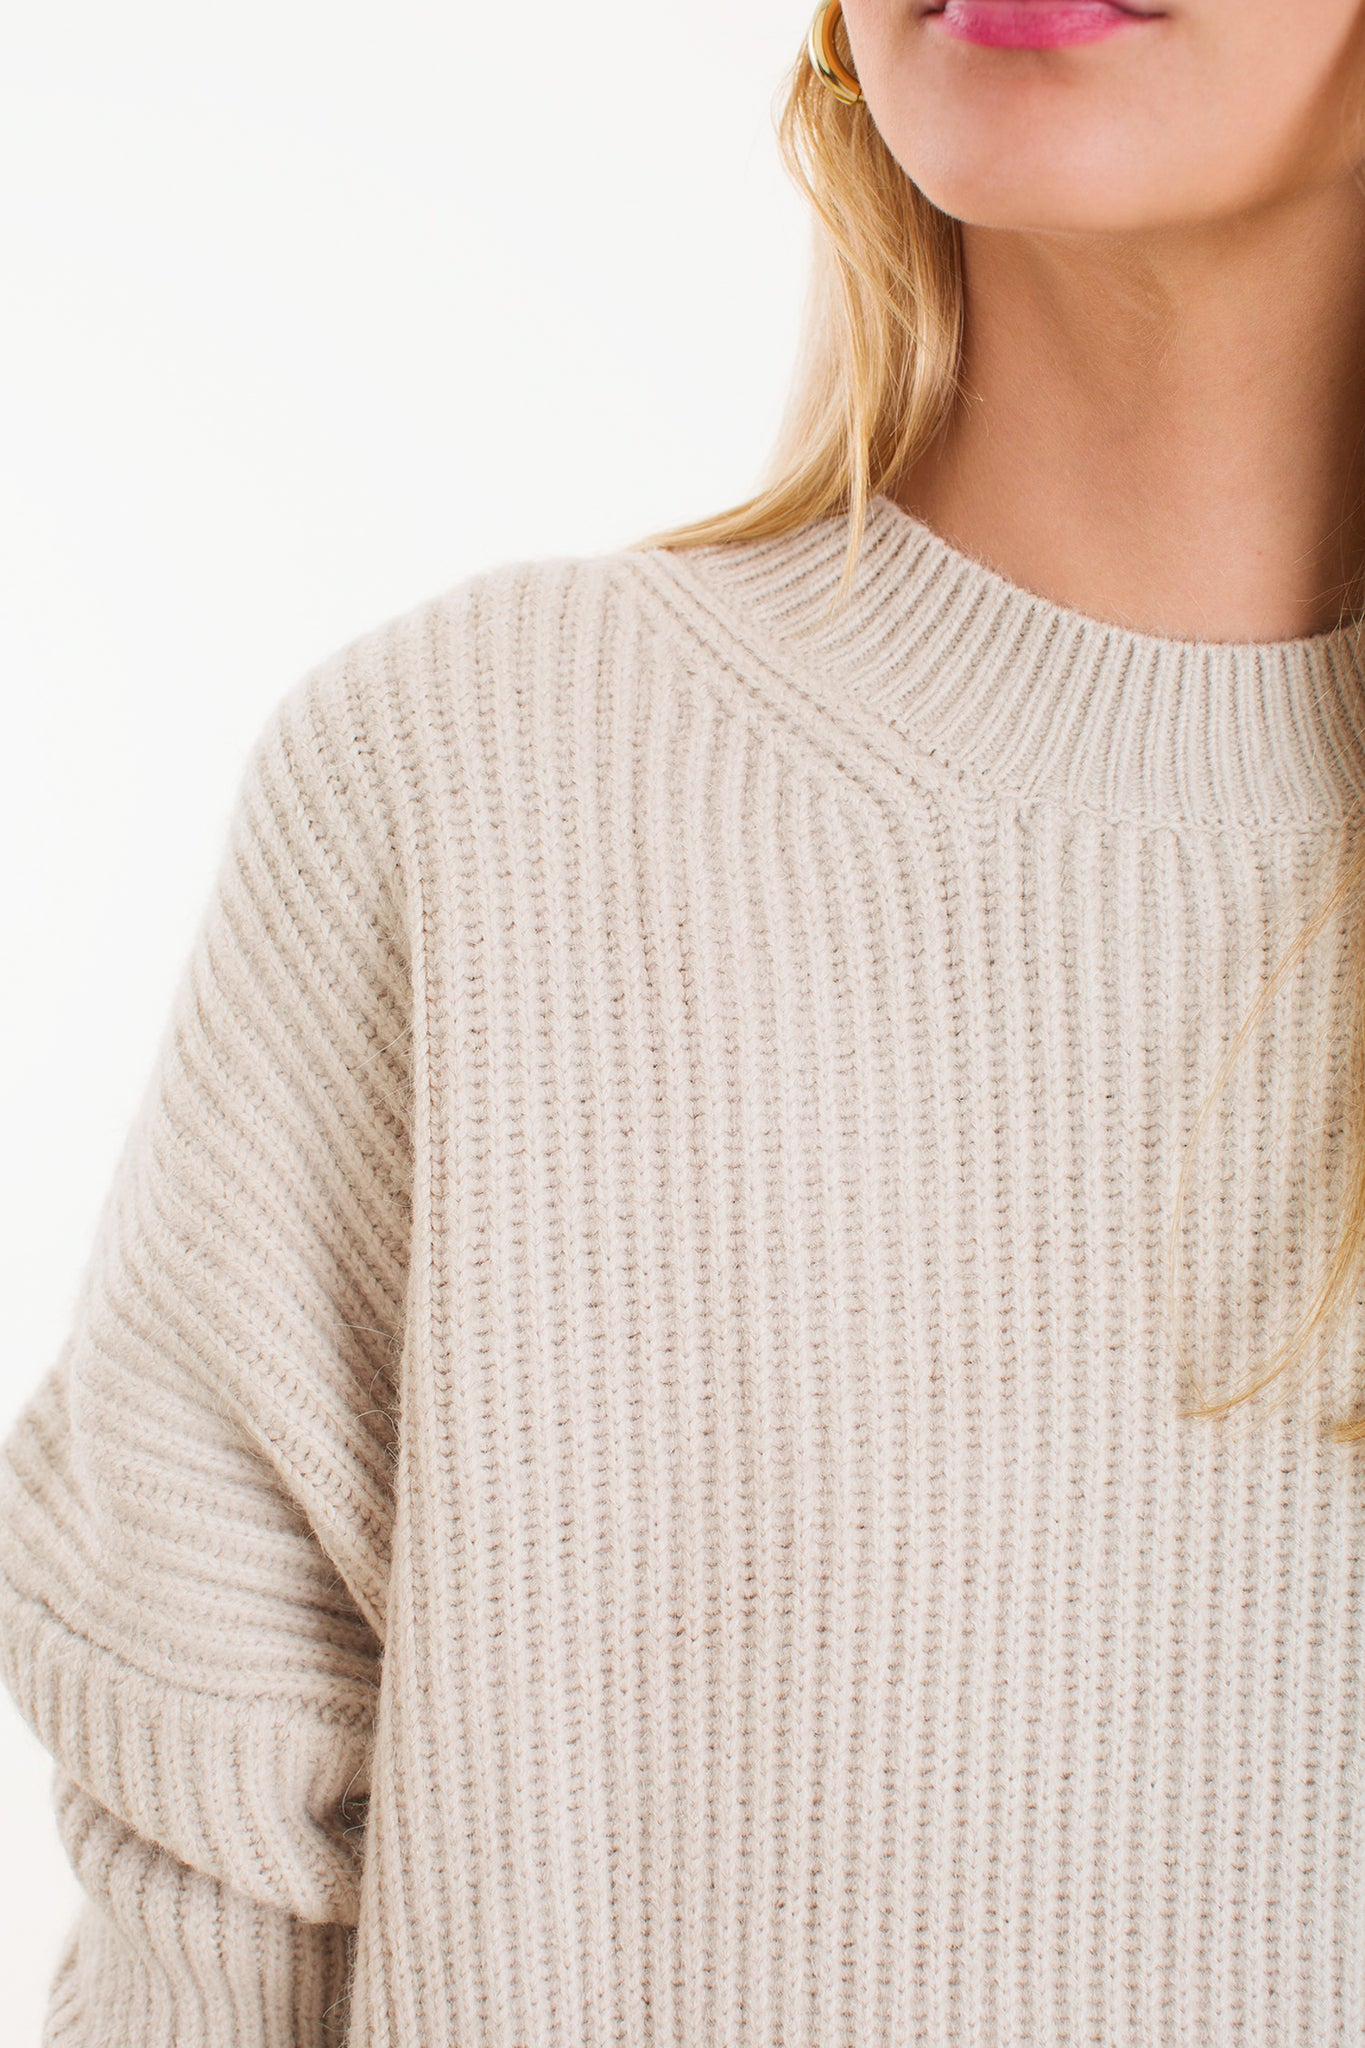 Chloe Knitted Sweater 7